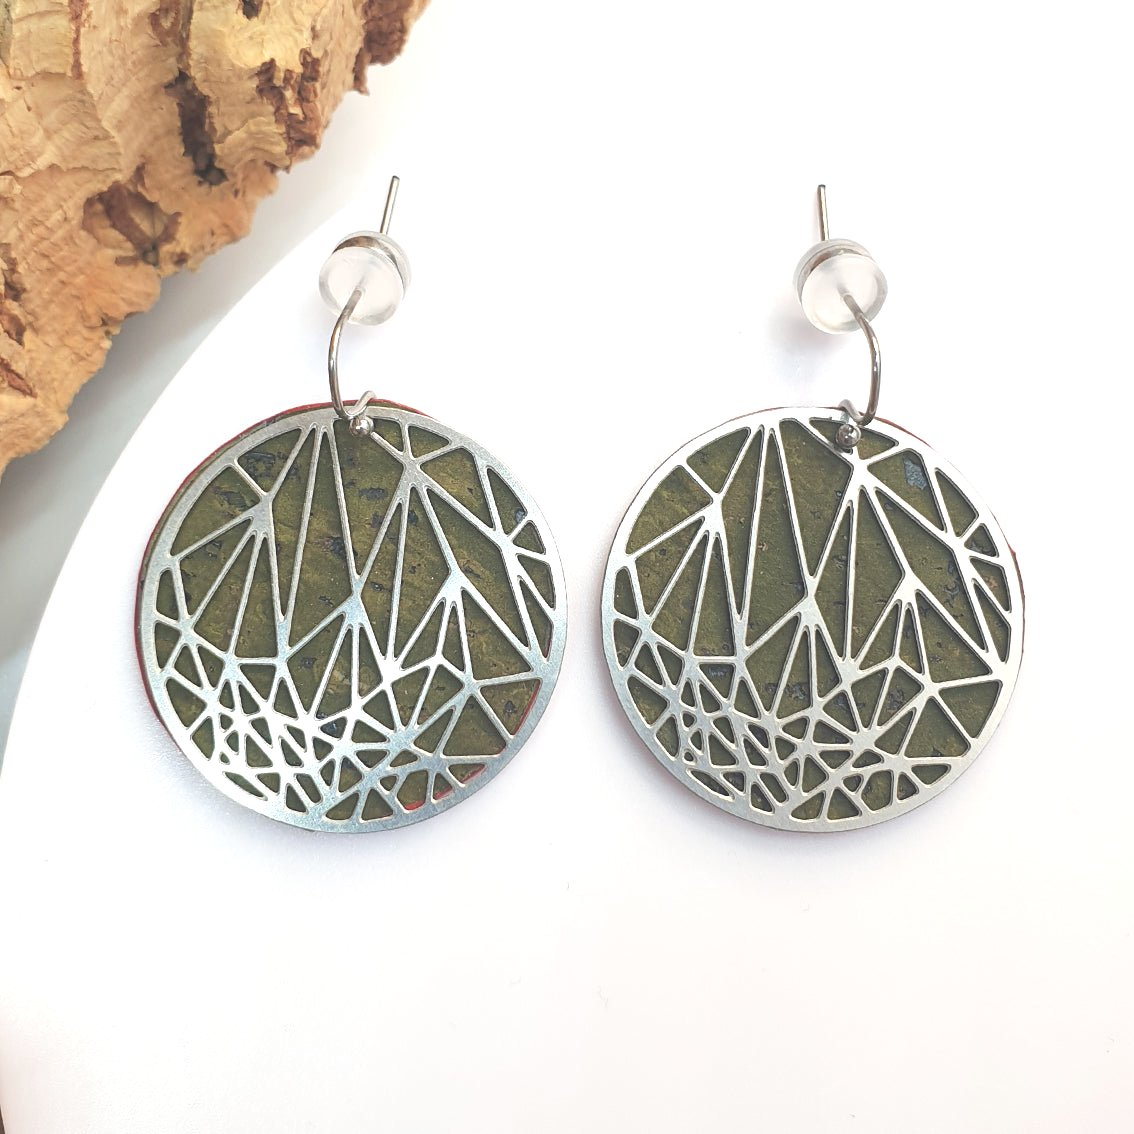 Fabrikk Stellar Laser Cut Earrings | Army Green | Vegan Leather